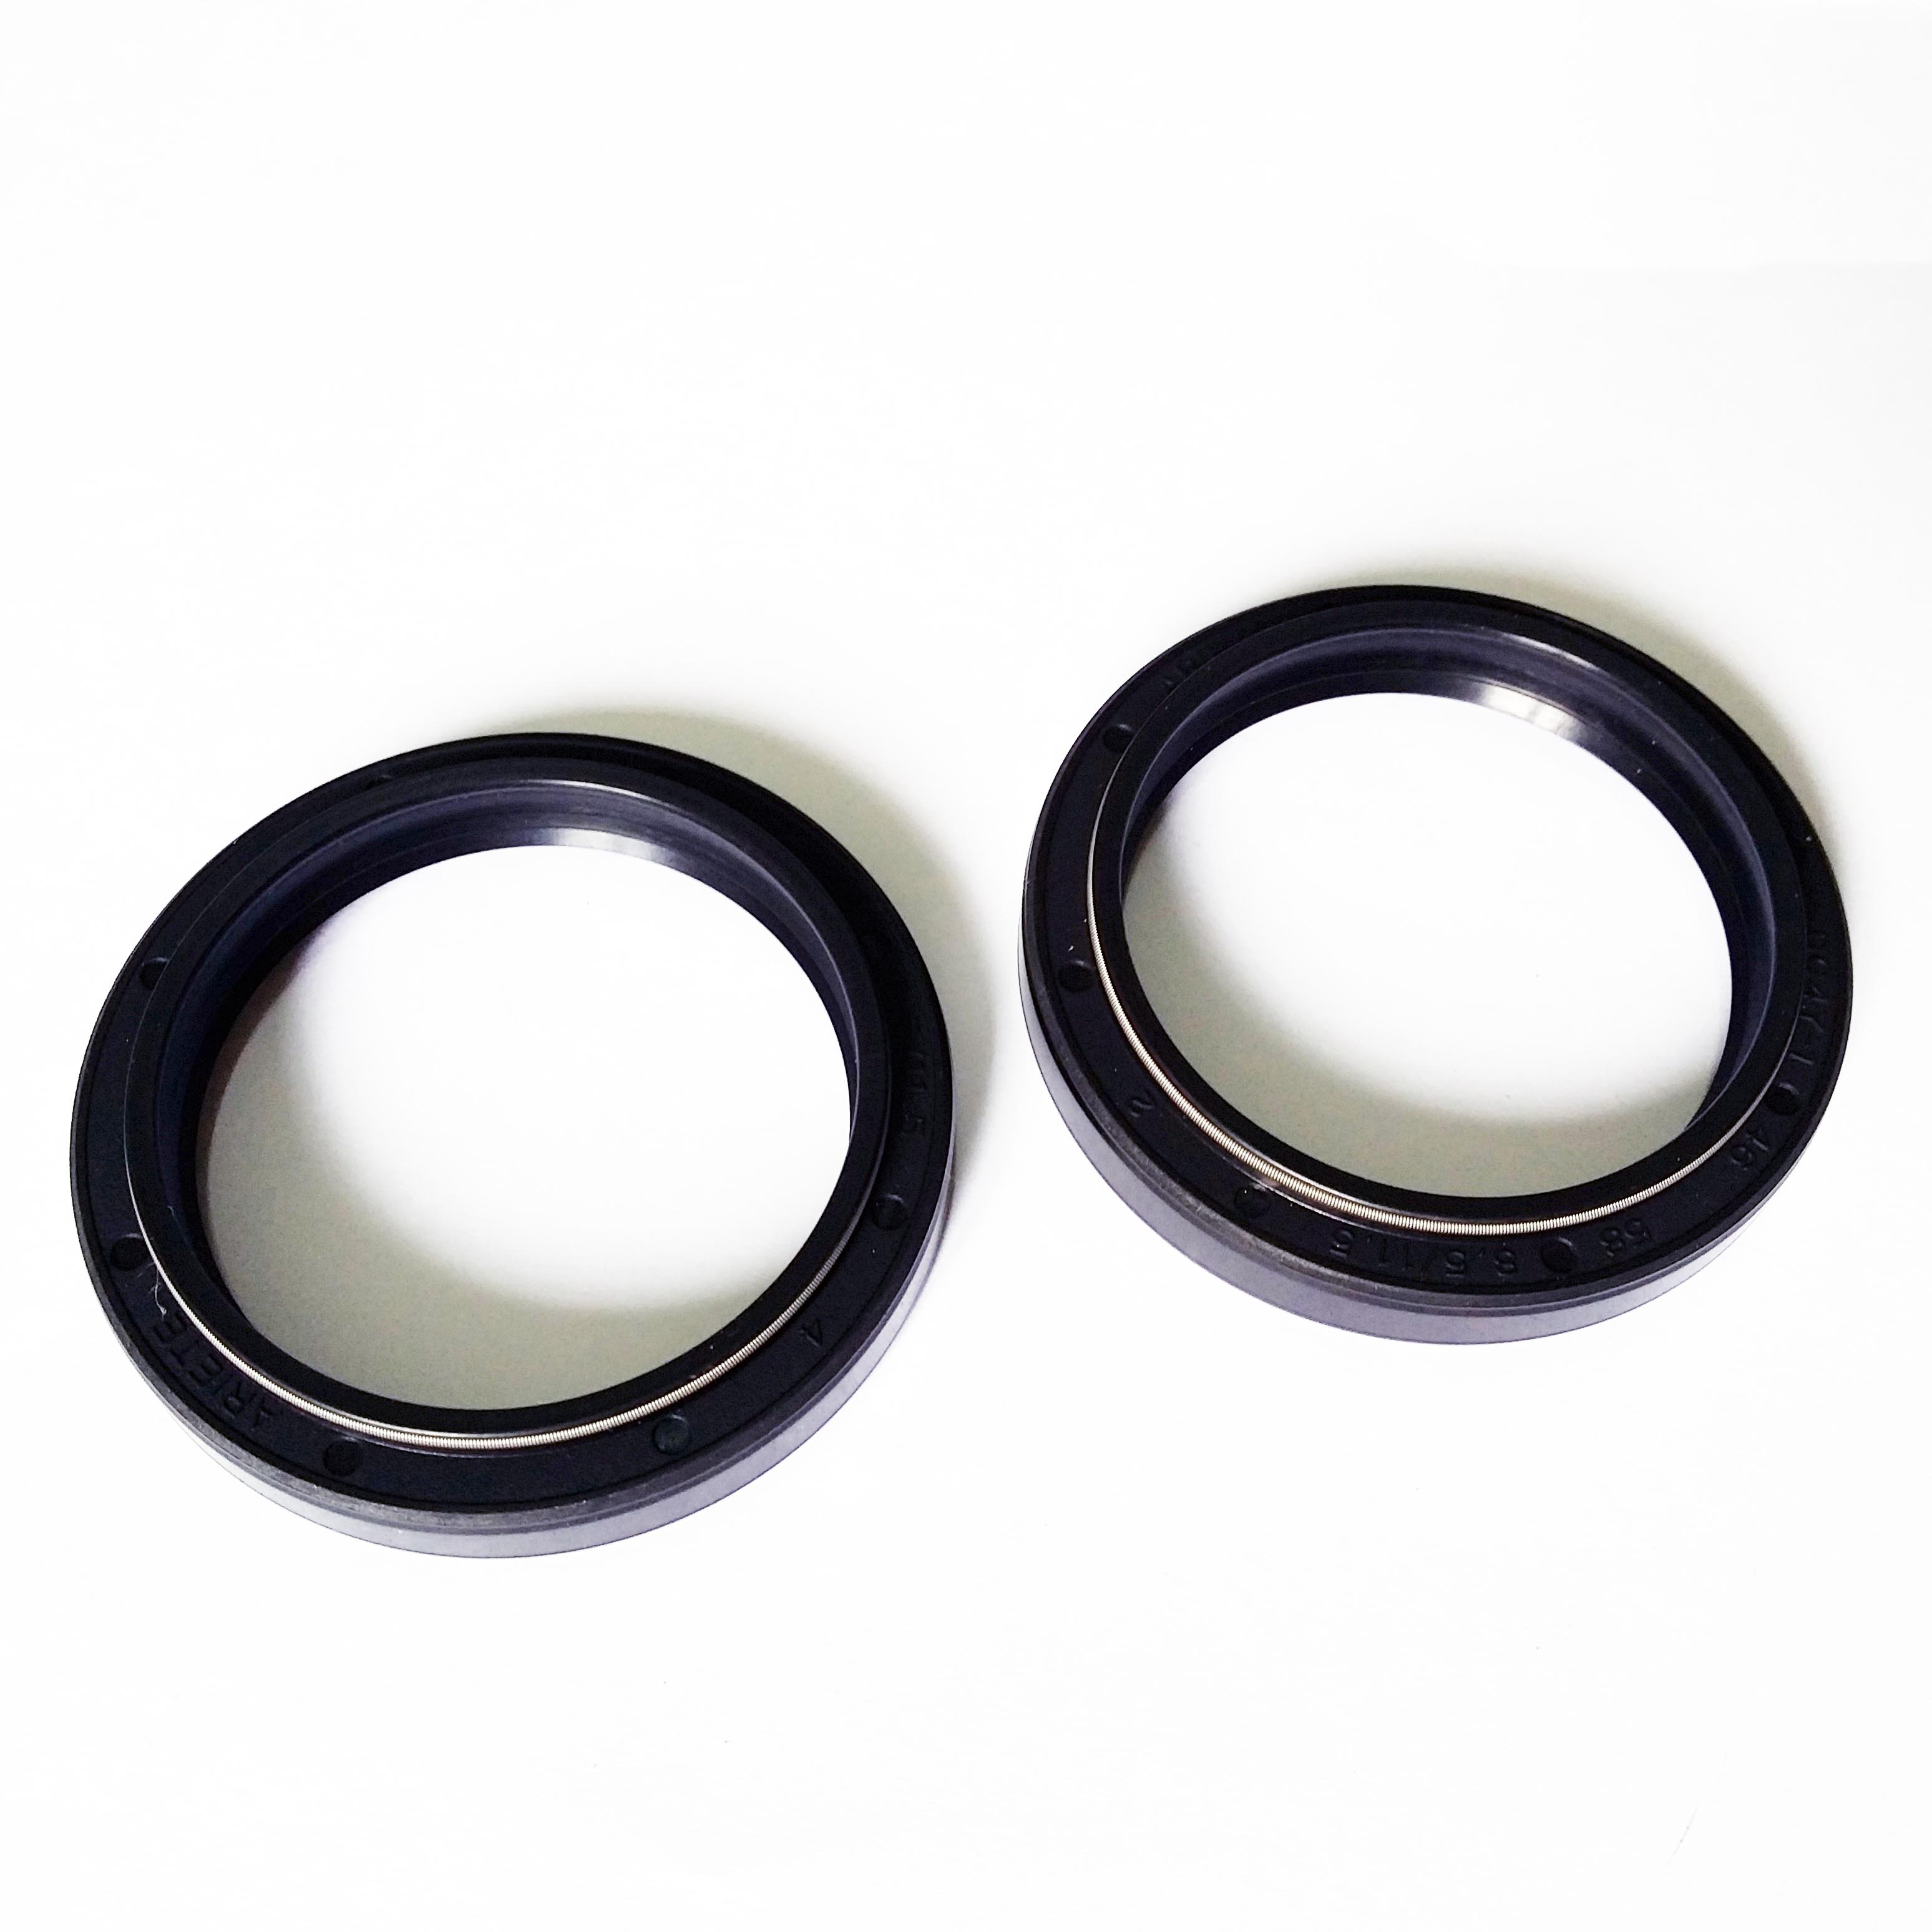 K-Tech Kawasaki ZX1400 2005-2016 NOK Front Fork Oil Seals